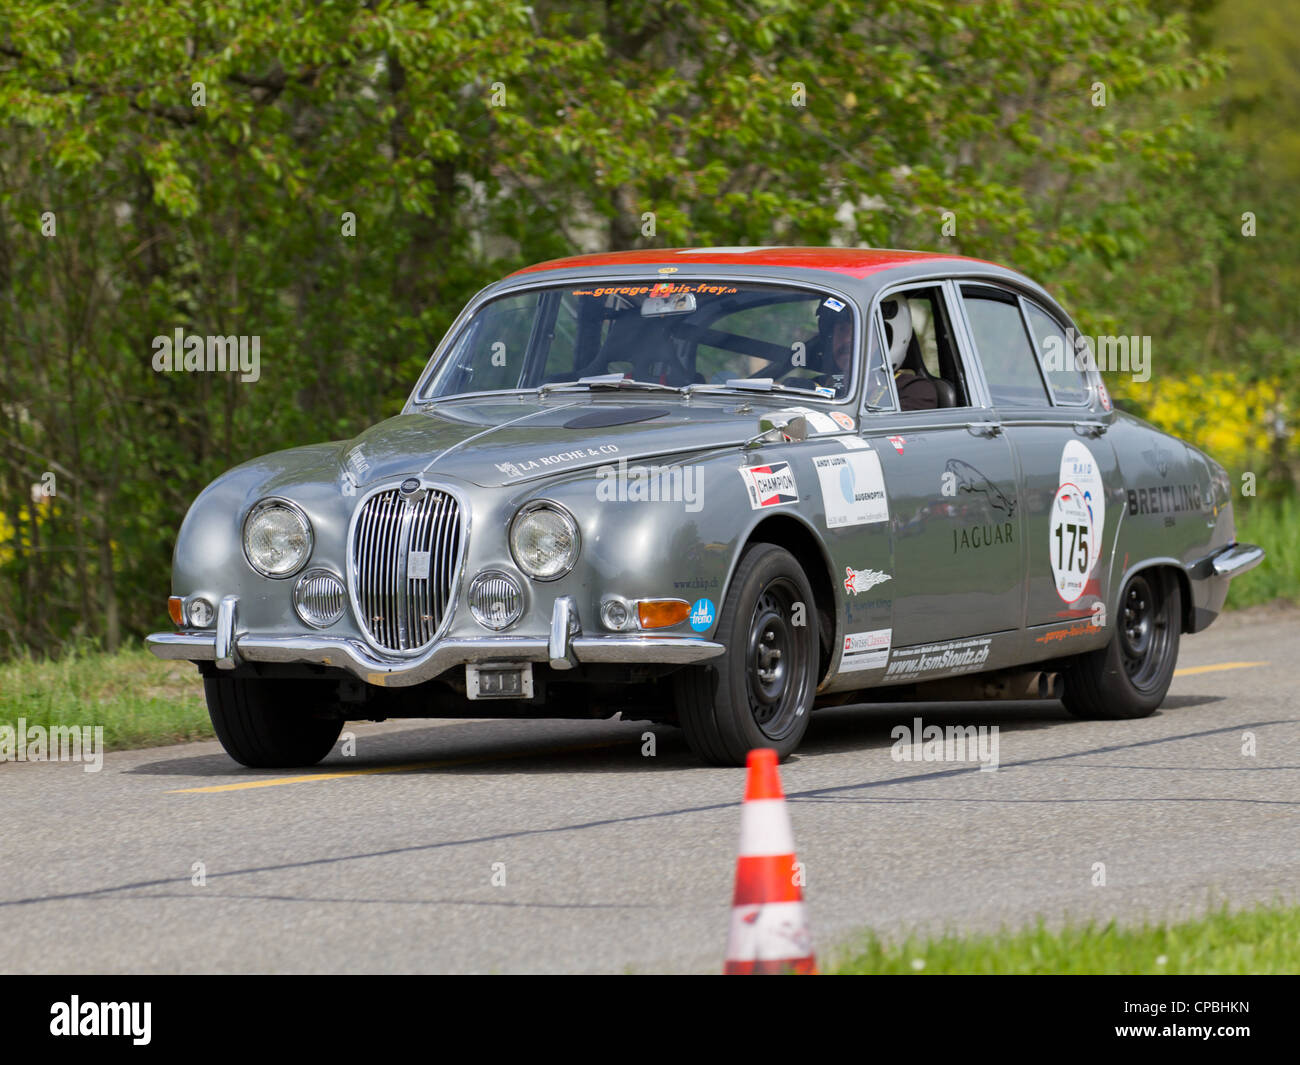 Vintage race touring car Jaguar 3.8 S from 1965 at Grand Prix in ...